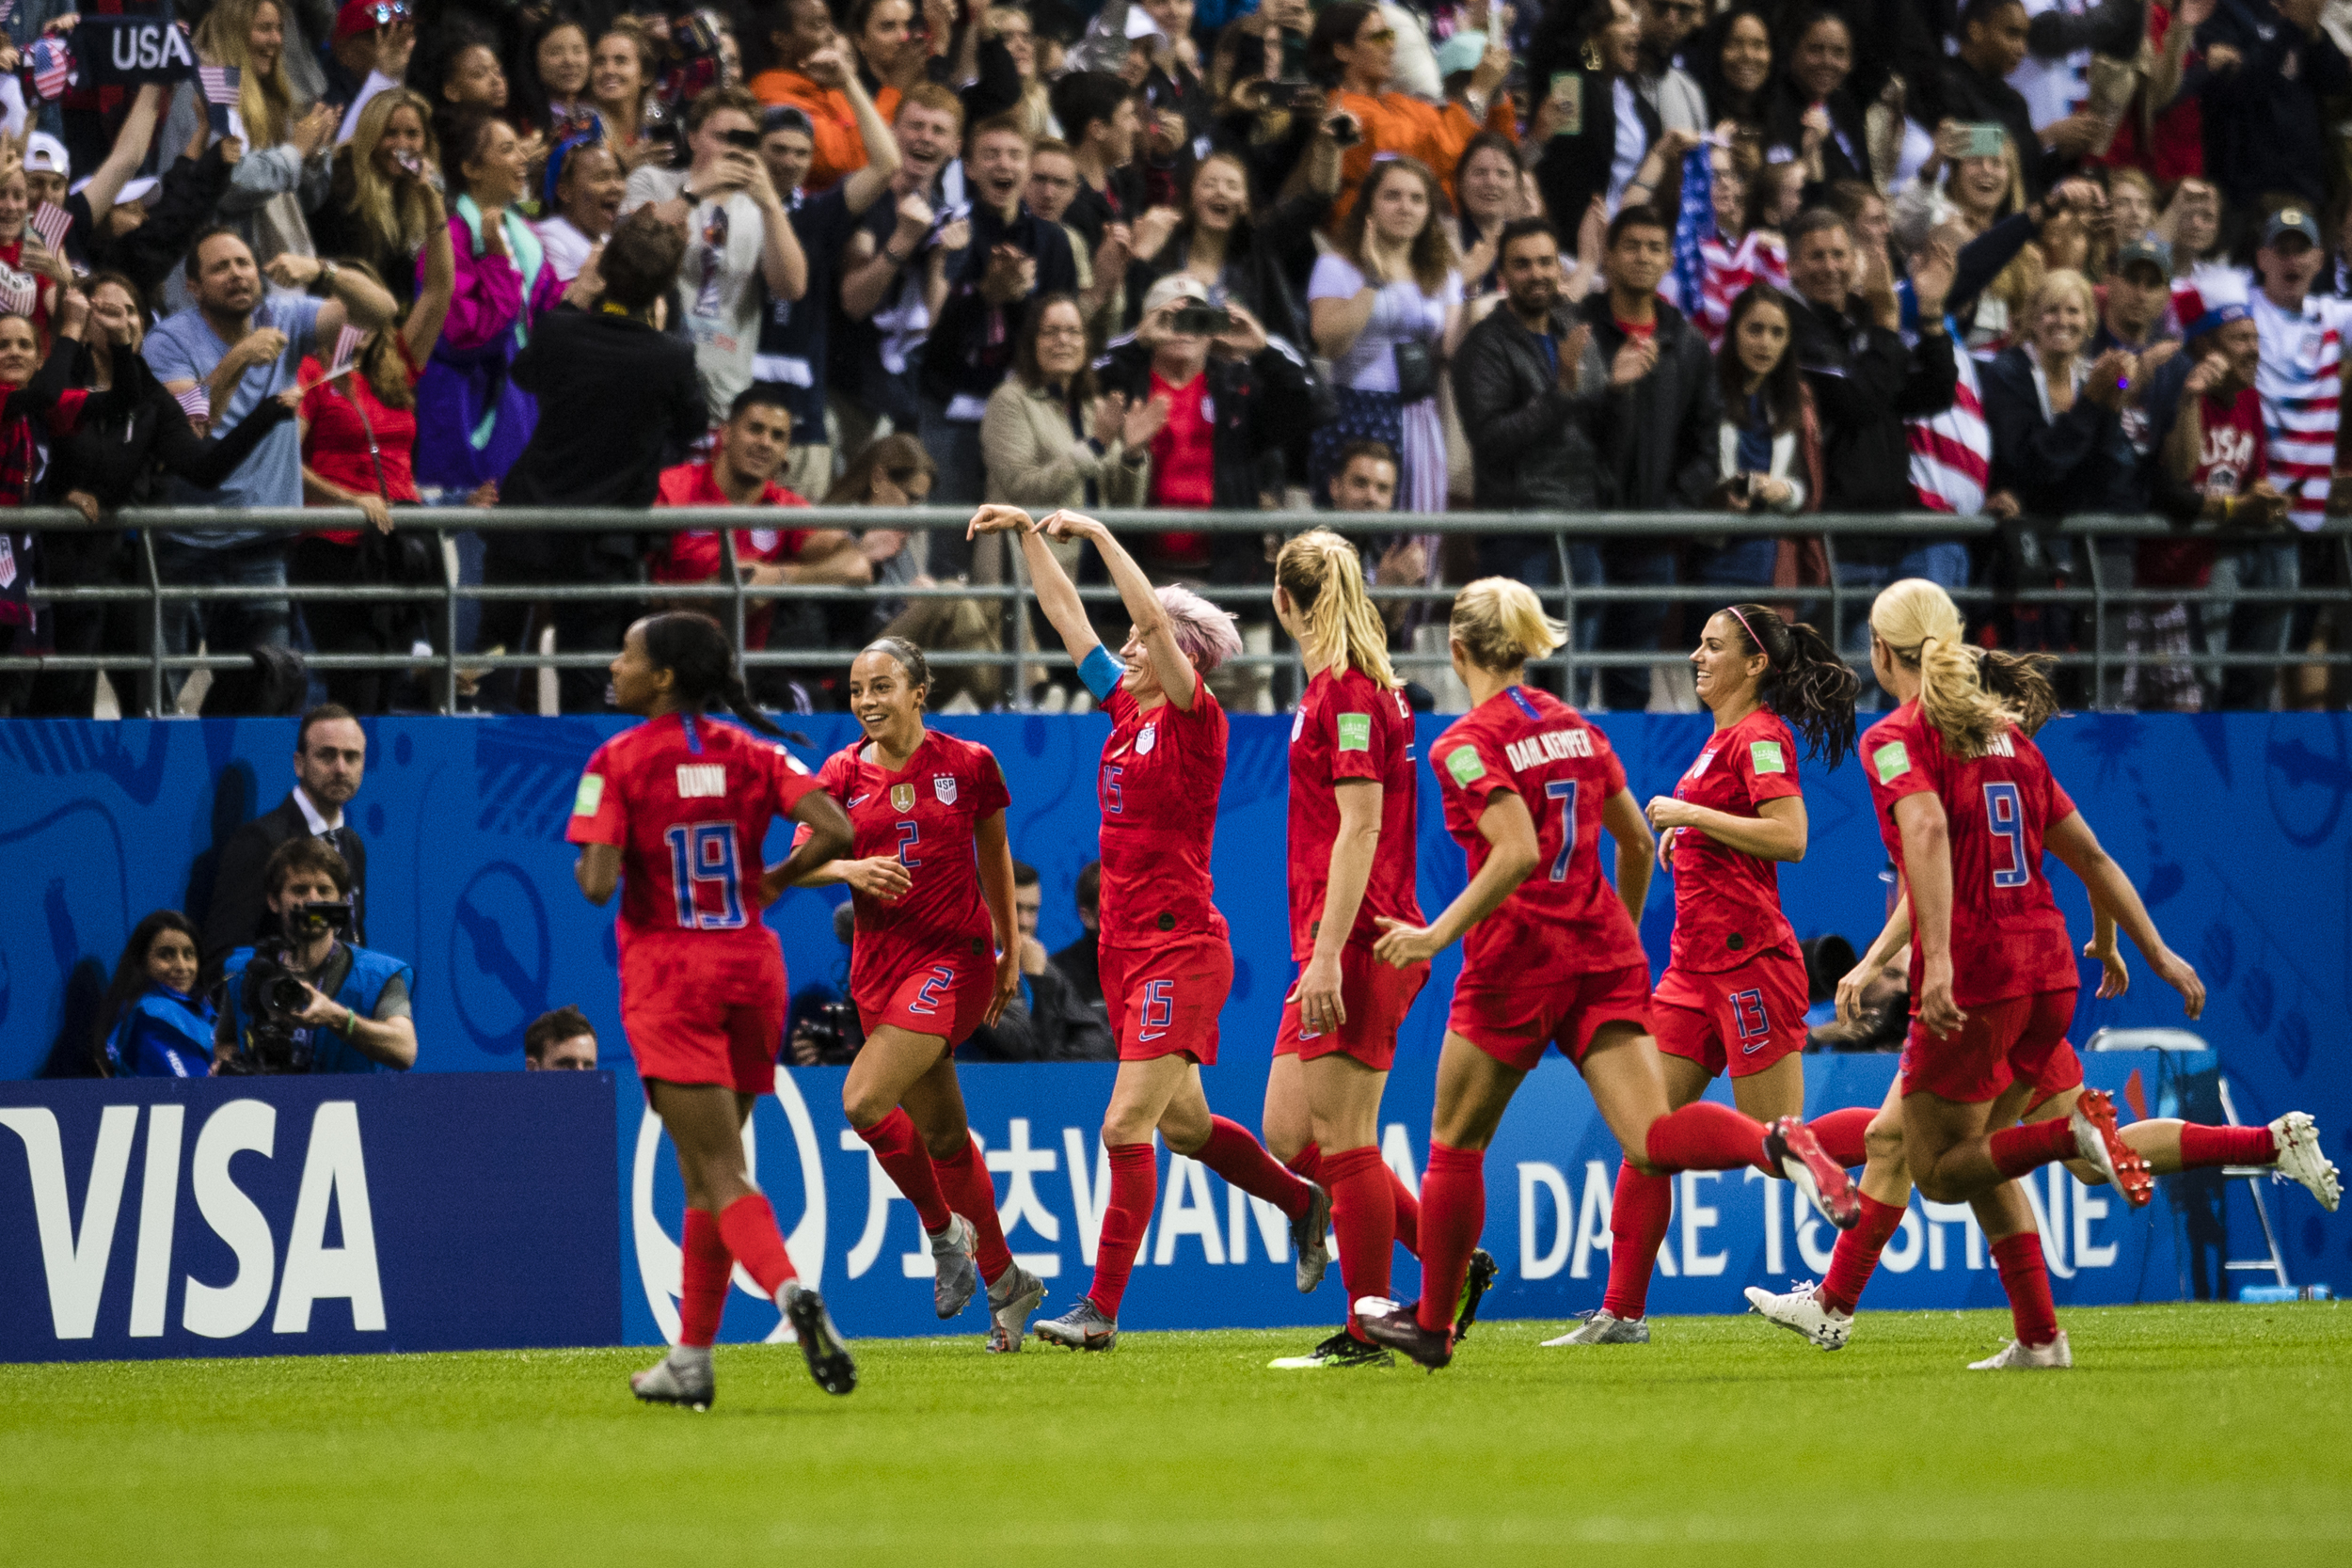 Women's World Cup 2019: Latest Odds, Expert Predictions